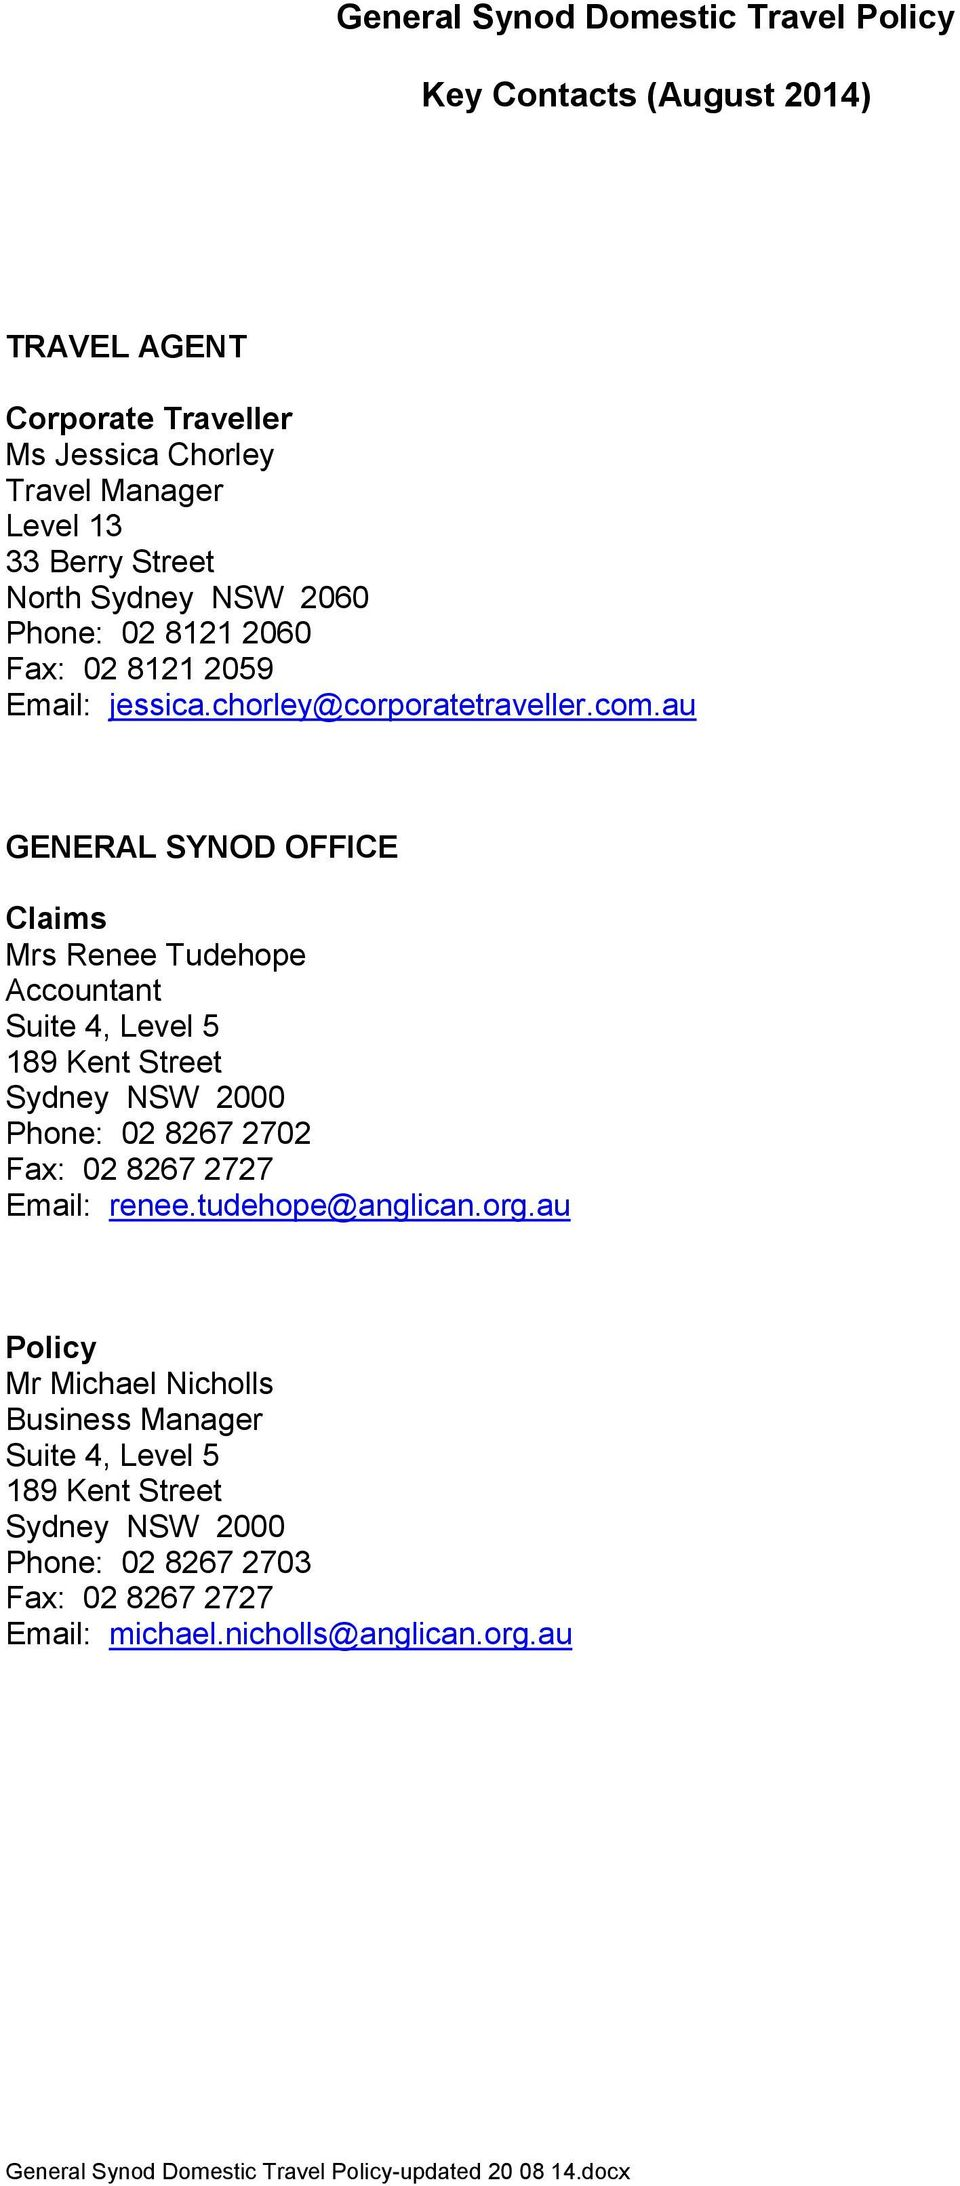 au GENERAL SYNOD OFFICE Claims Mrs Renee Tudehope Accountant Suite 4, Level 5 189 Kent Street Sydney NSW 2000 Phone: 02 8267 2702 Fax: 02 8267 2727 Email: